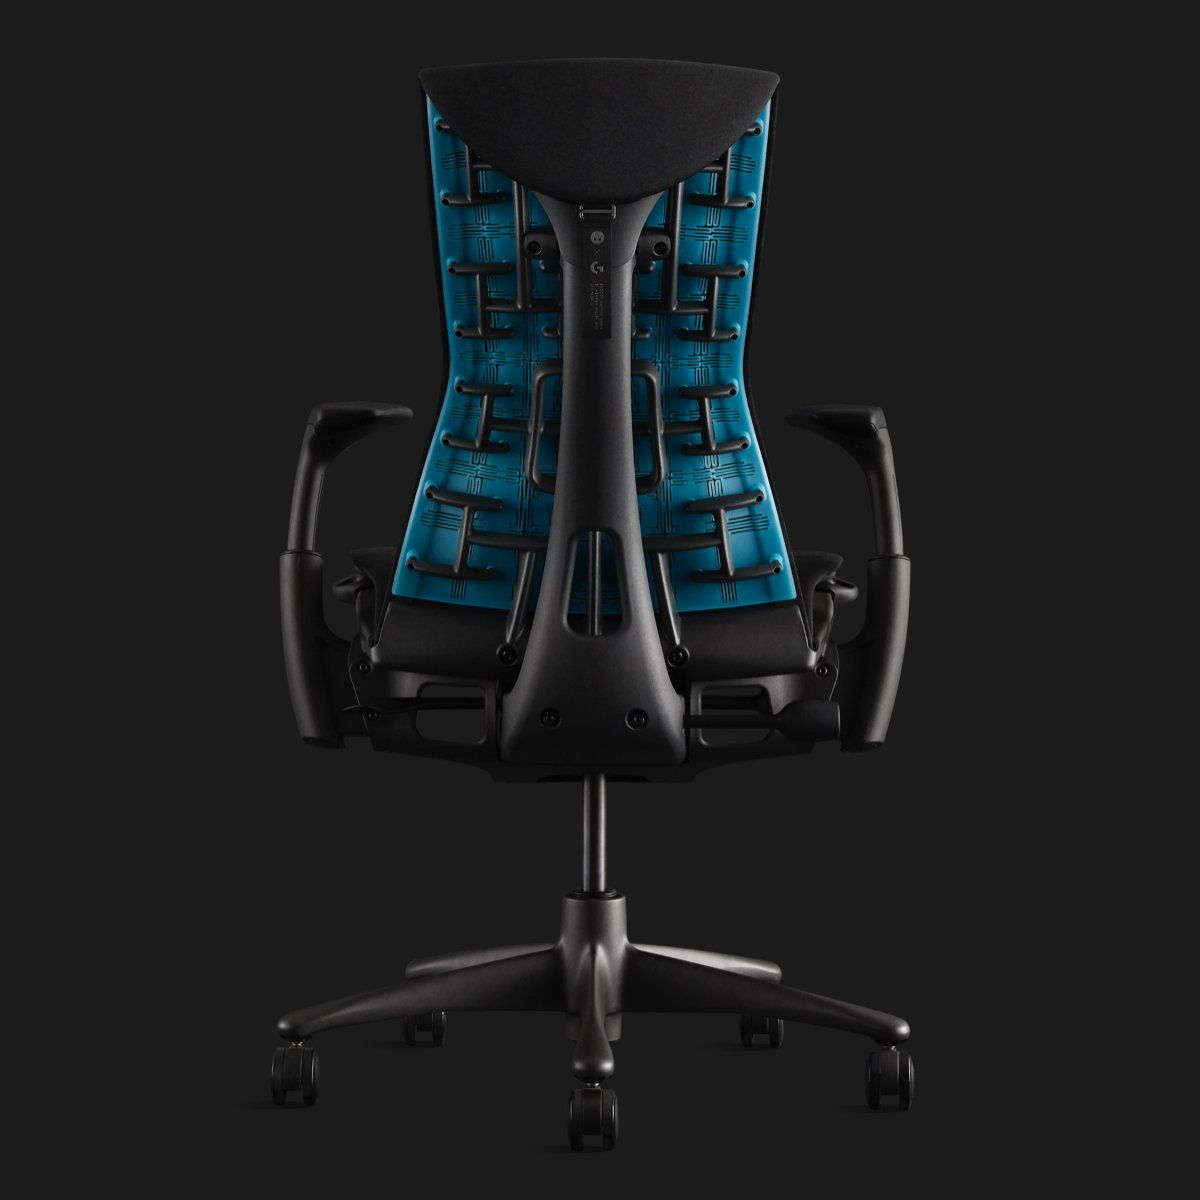 Logitech and herman miller launch a gaming chair in 2020